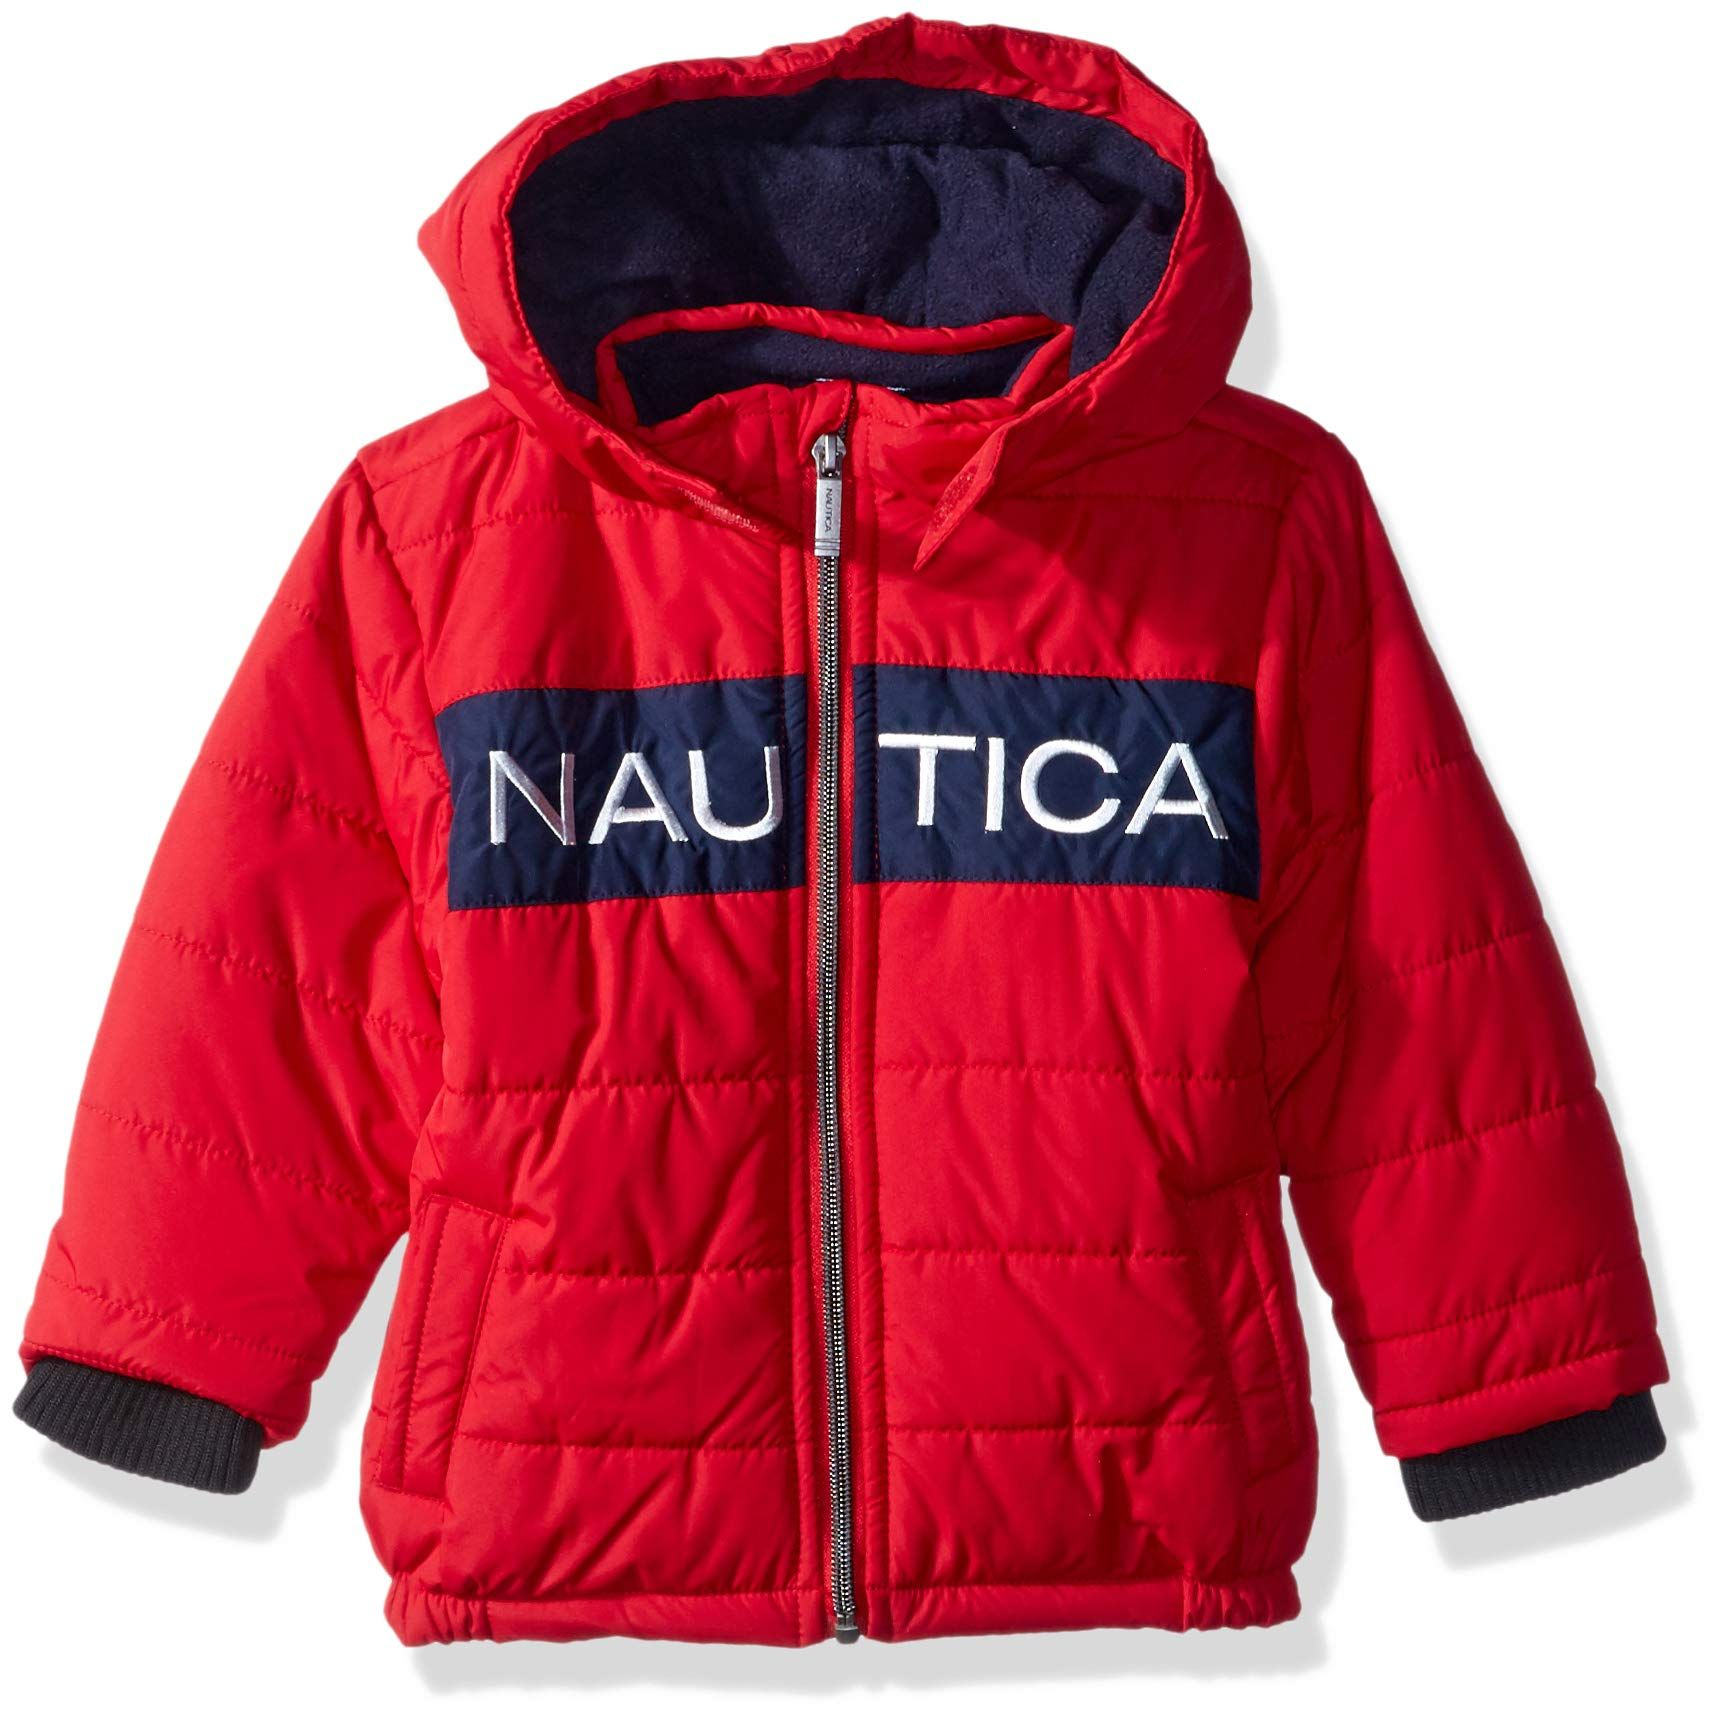 Nautica Baby Boys Signature Puffer Jacket With Storm Cuffs Arthur Red 12 Months Make Sure To Have A Look At This I In 2020 Baby Boy Jackets Jackets Hooded Jacket